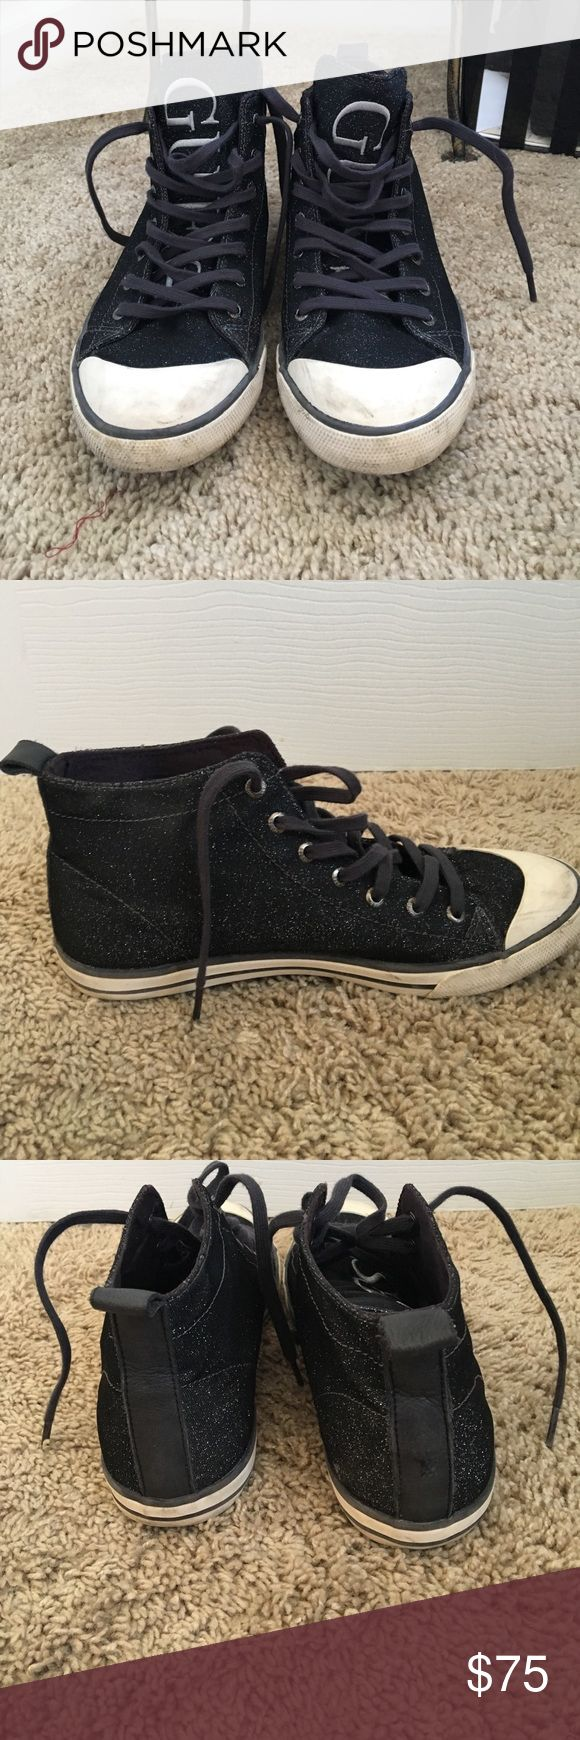 Guess Sneakers I accept offers!!! Glittery GUESS sneakers!!! Slightly used with some marks on white toe caps but nothing major. Hardly worn. Has a cute strip of black leather on back of shoes Guess Shoes Sneakers